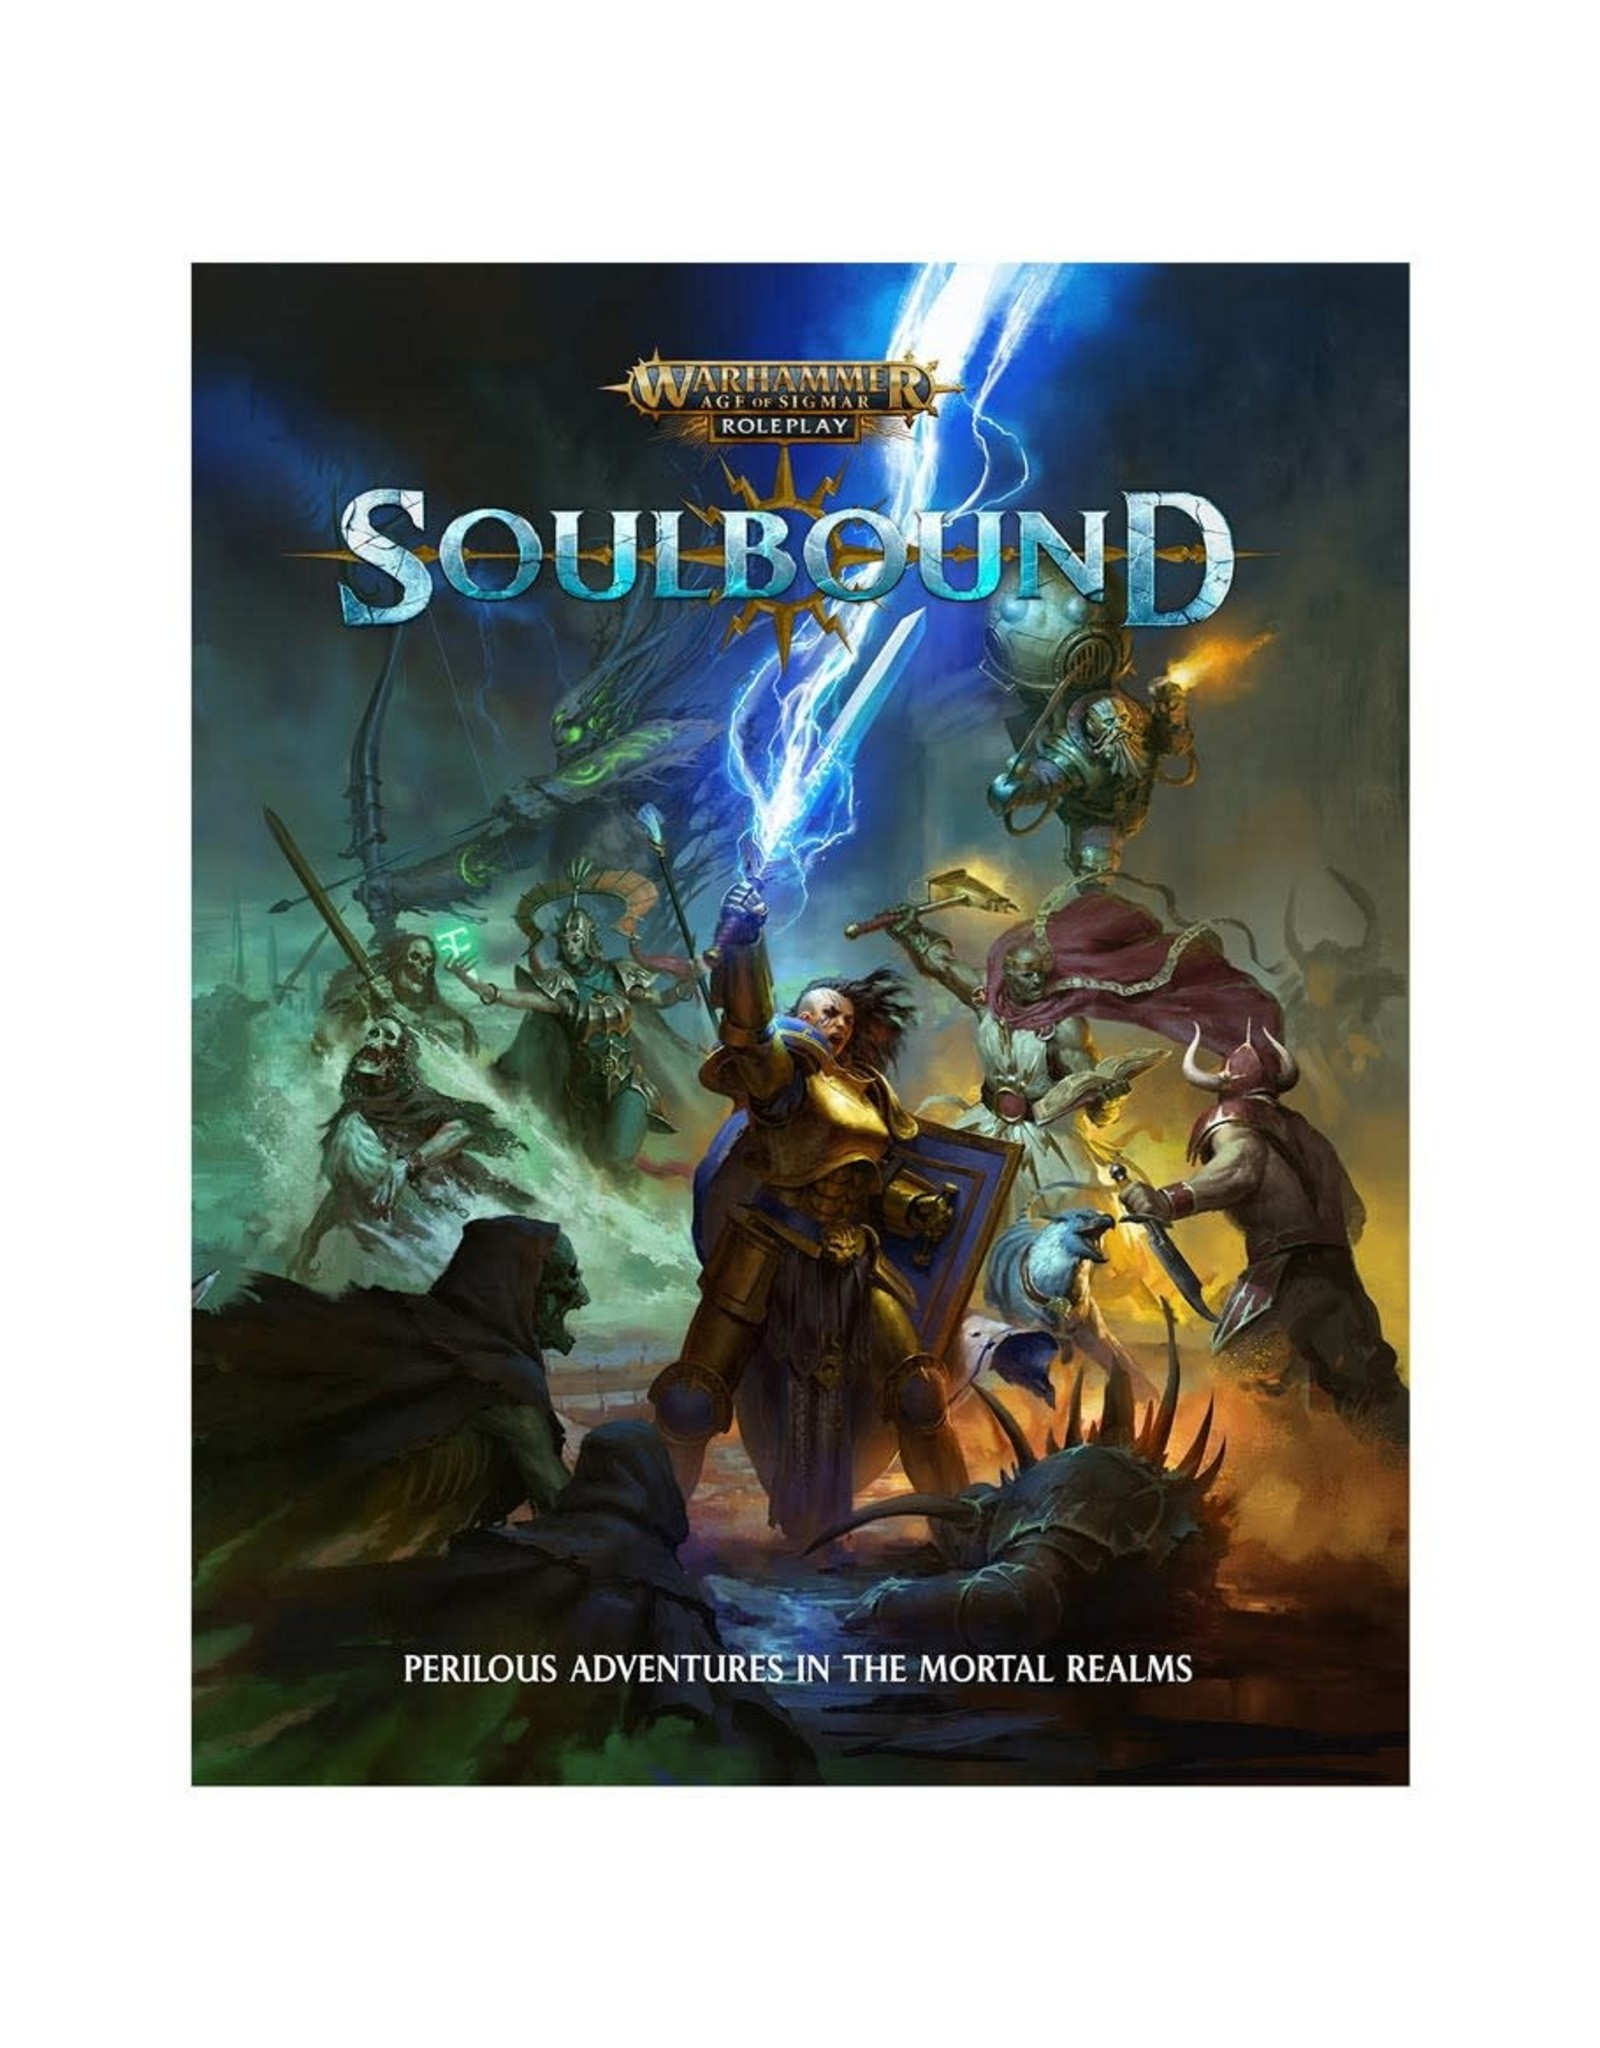 Cubicle Seven Warhammer Age of Sigmar - Soulbound RPG:  Core Rulebook